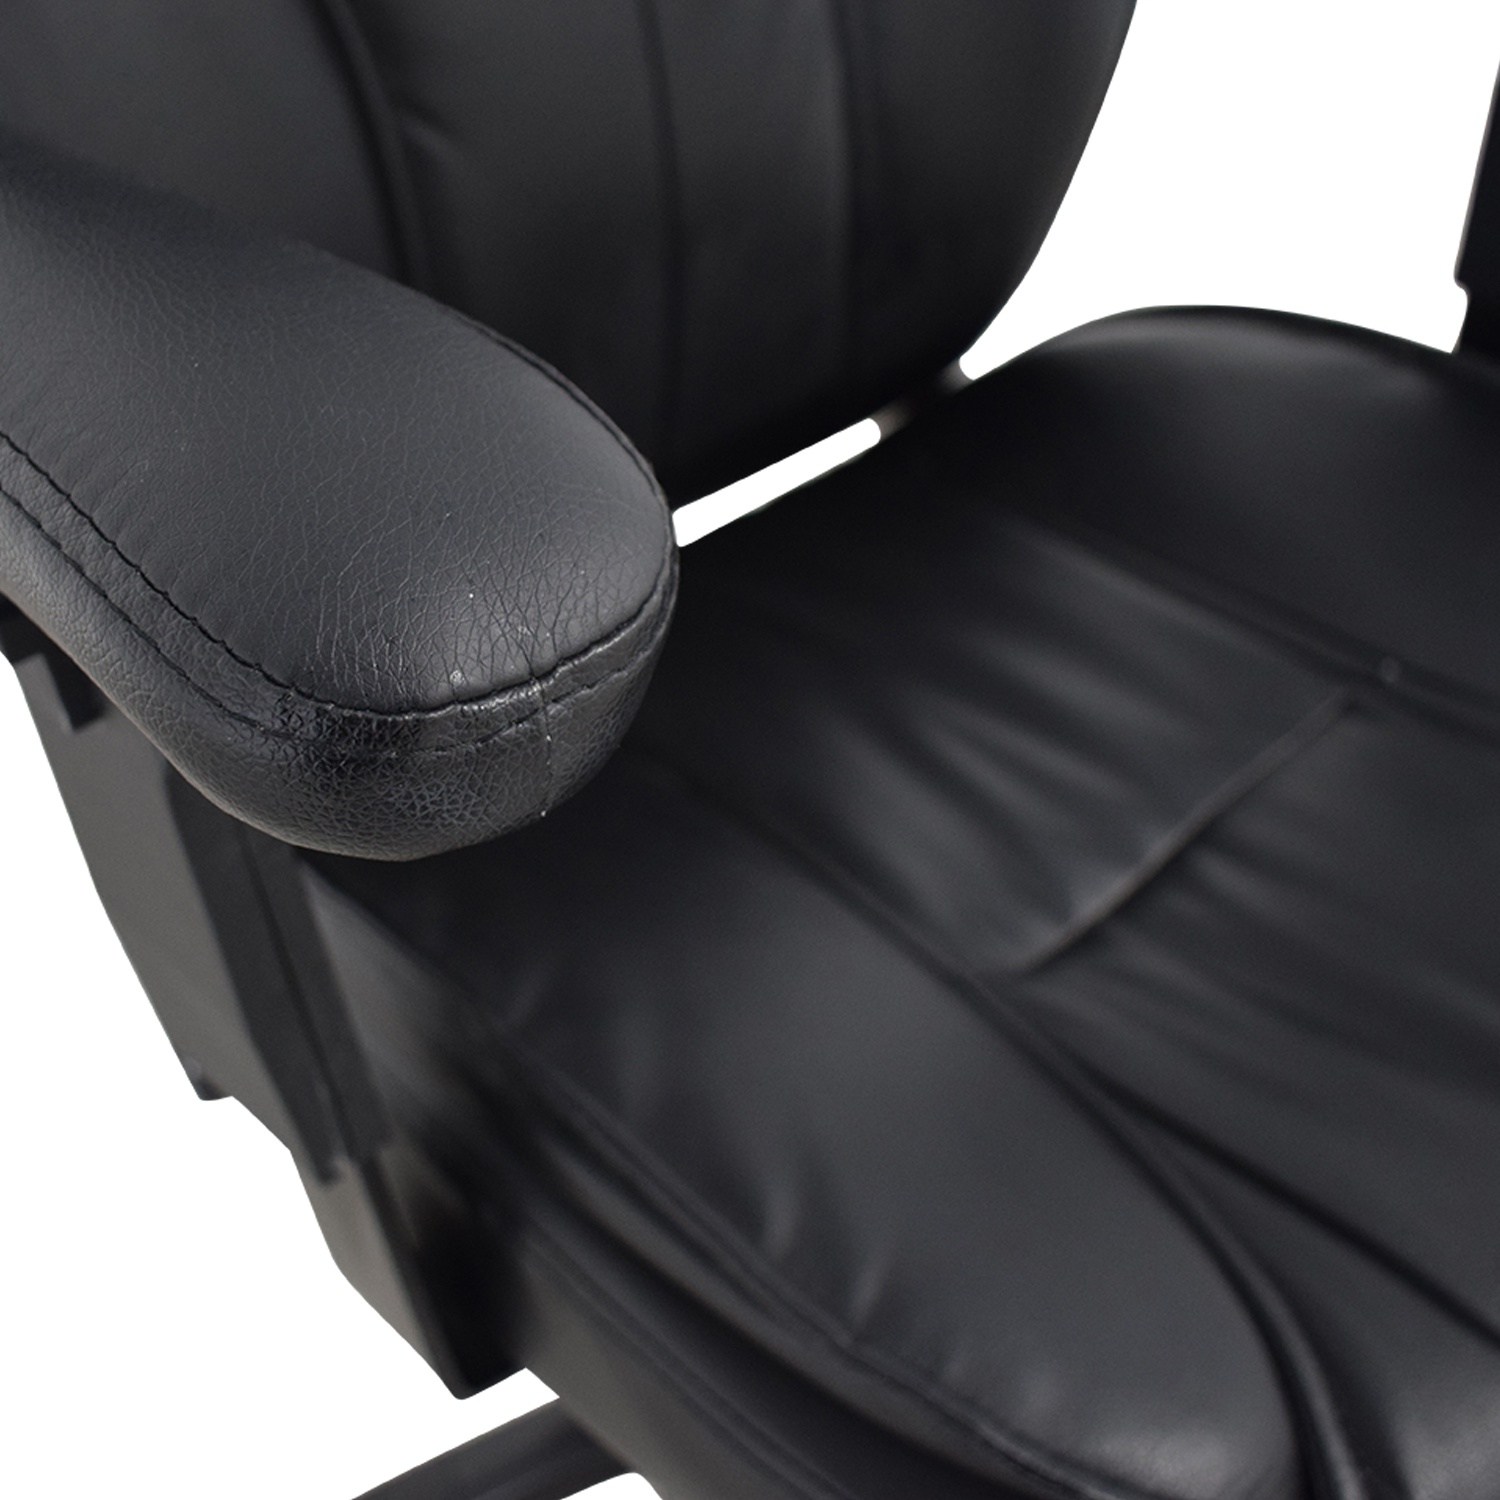 Black Office Chair price